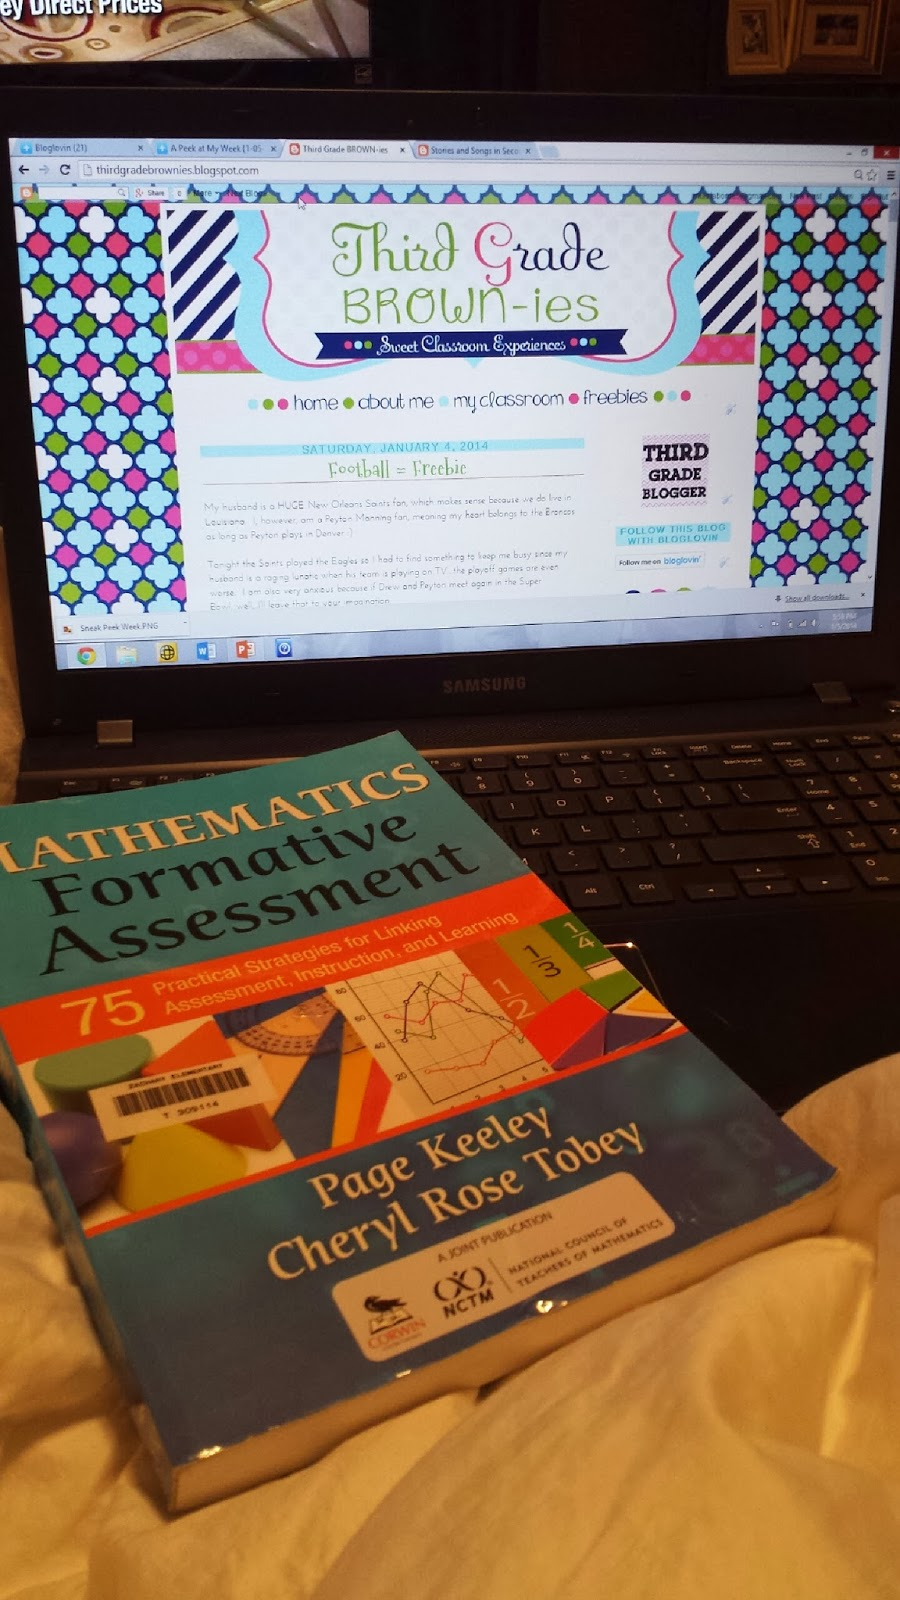 I Hope This Will Be Helpful To Some Of You. Anyone Already Familiar With  Page Keeley And Her Formative Assessment Strategies For Math?